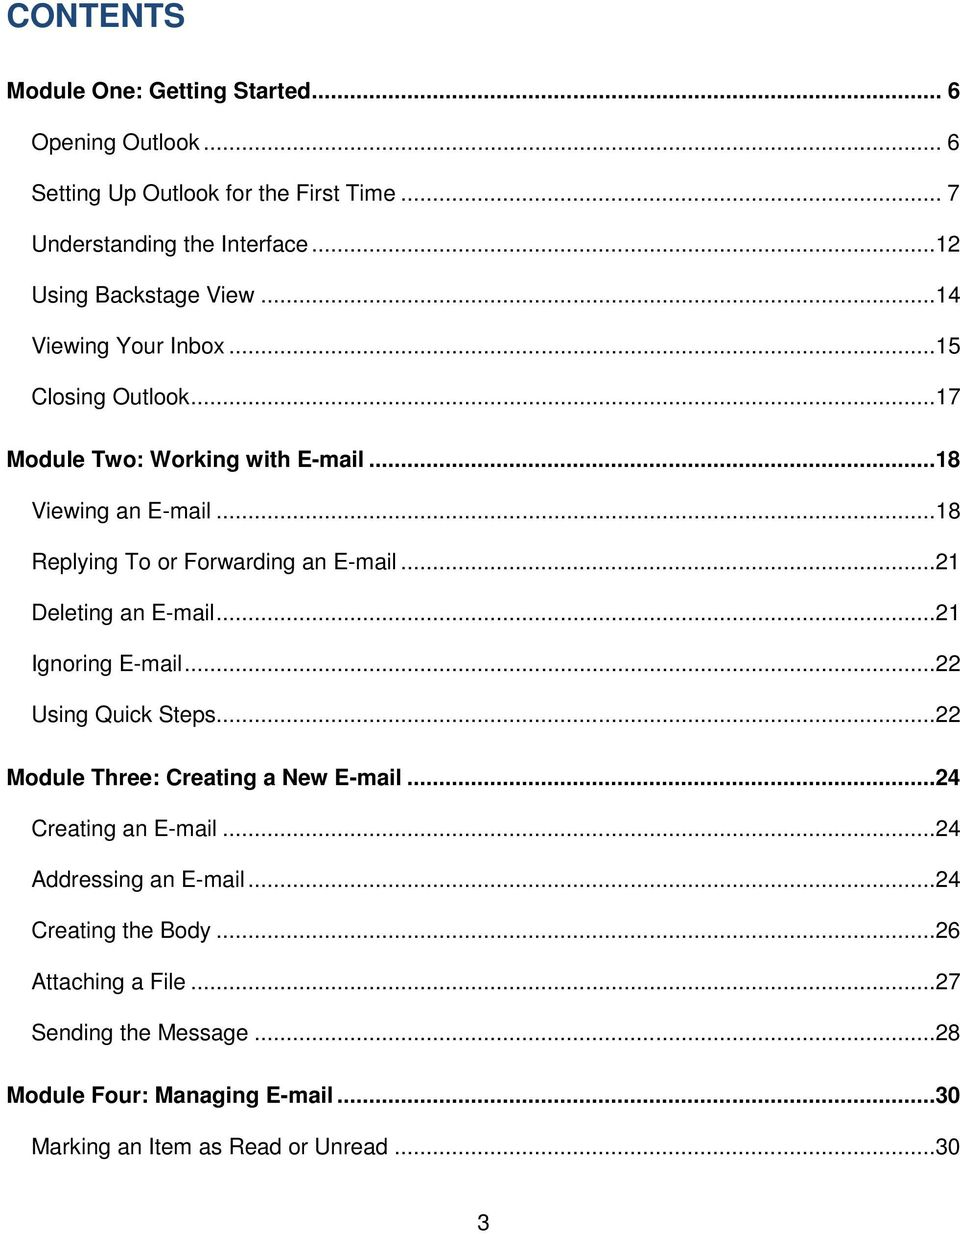 ..18 Replying To or Forwarding an E-mail...21 Deleting an E-mail...21 Ignoring E-mail...22 Using Quick Steps...22 Module Three: Creating a New E-mail.